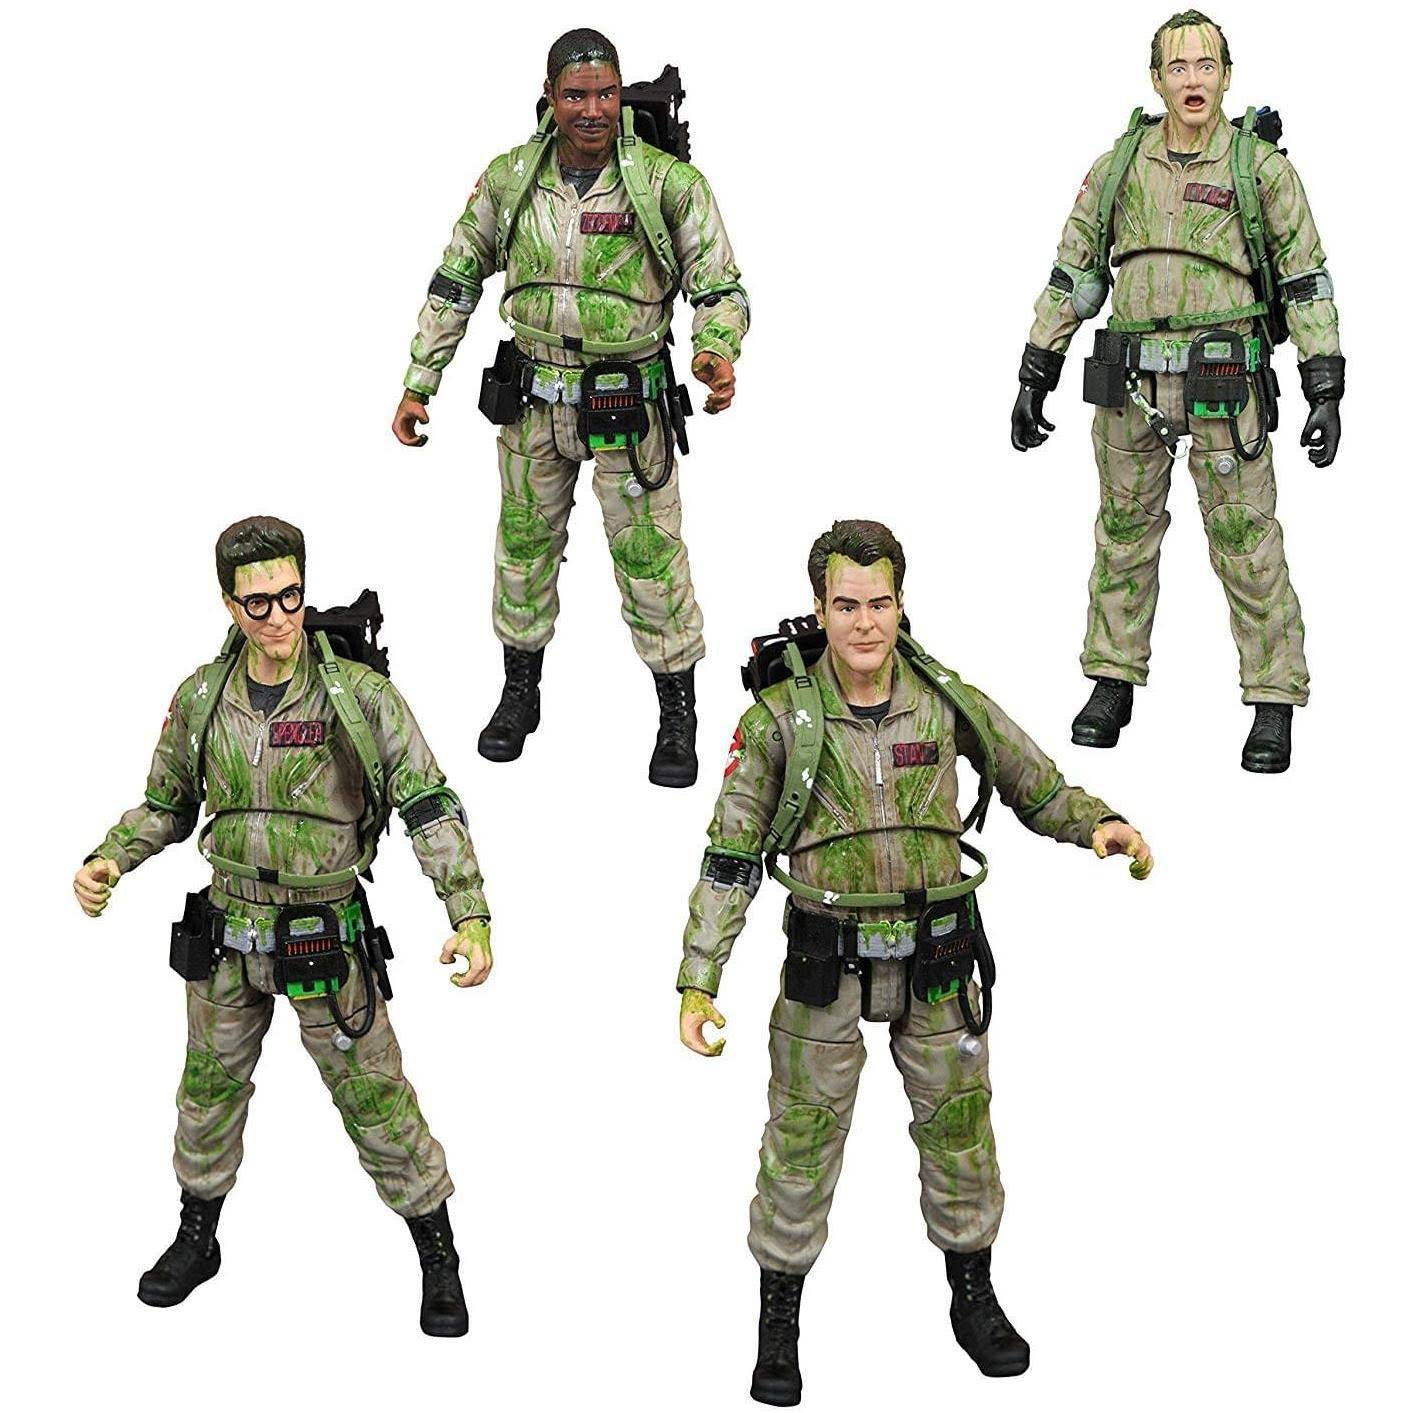 Ghostbusters Slimed Action Figure Box Set - Scale 1:10